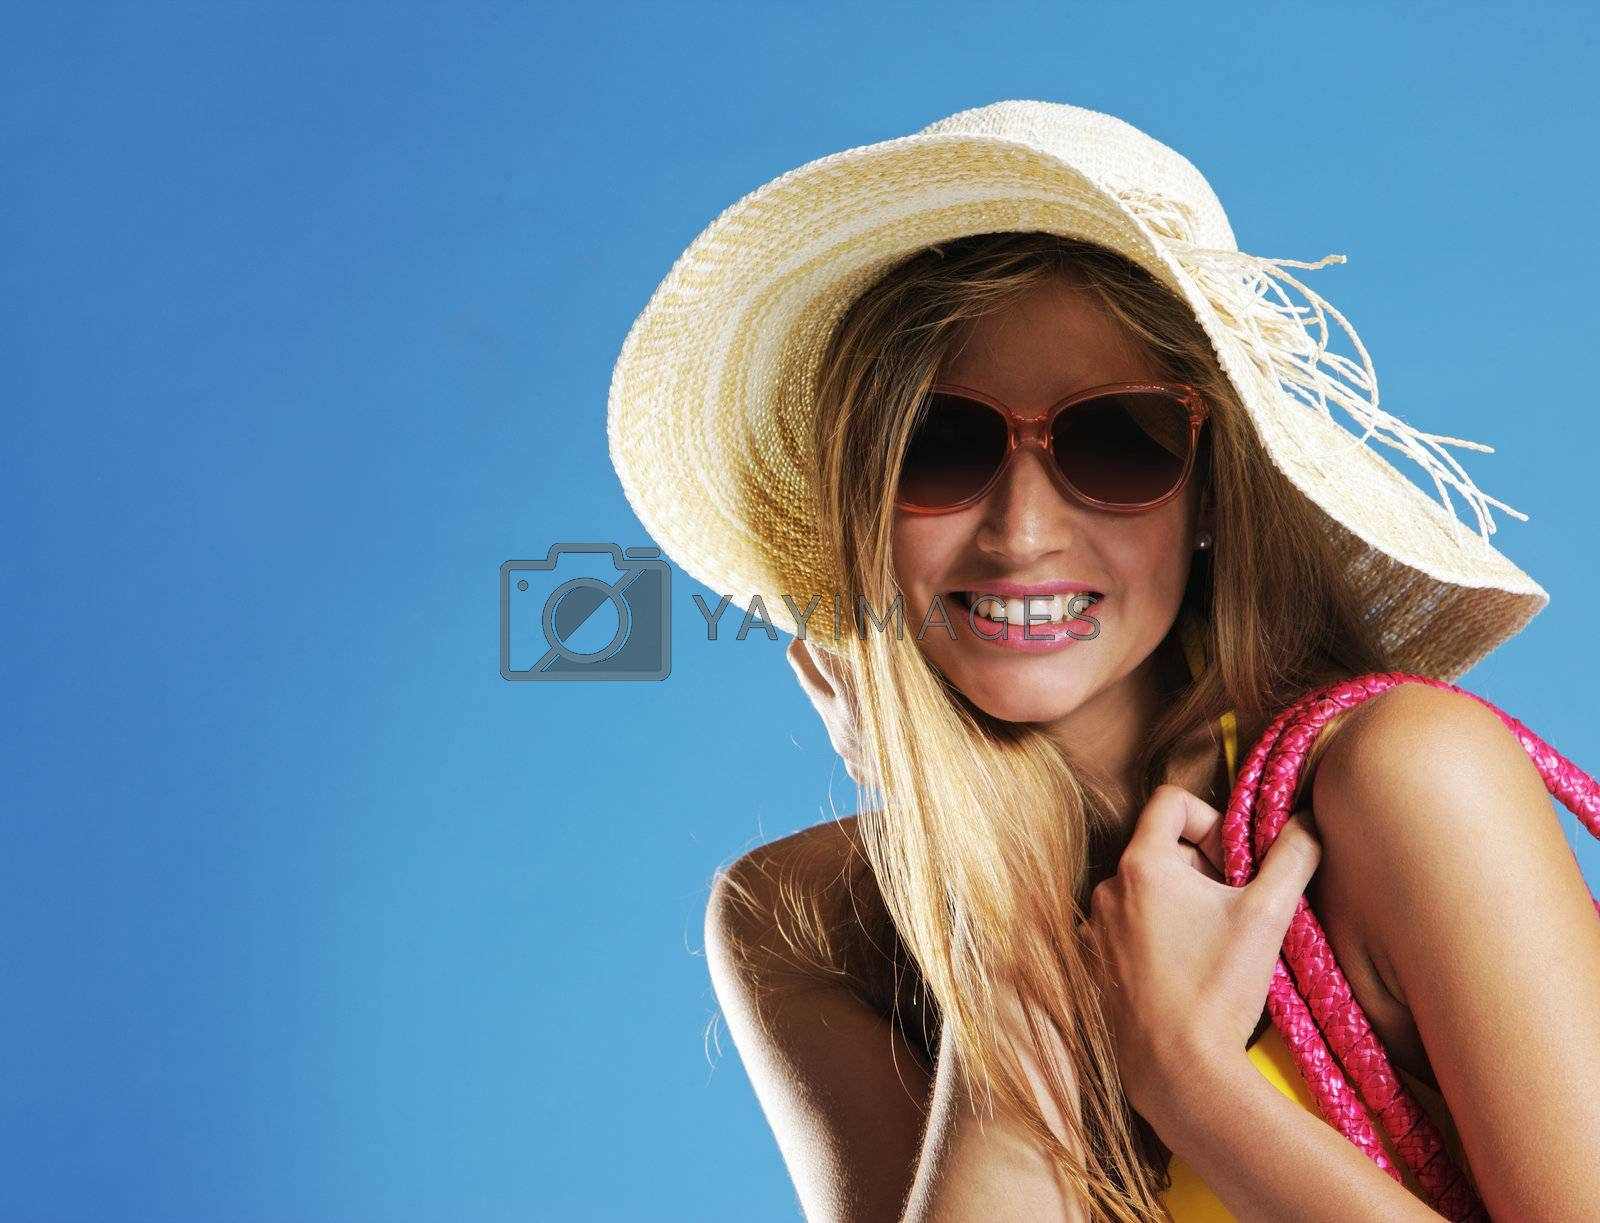 Smiling young woman against blue background, copy space